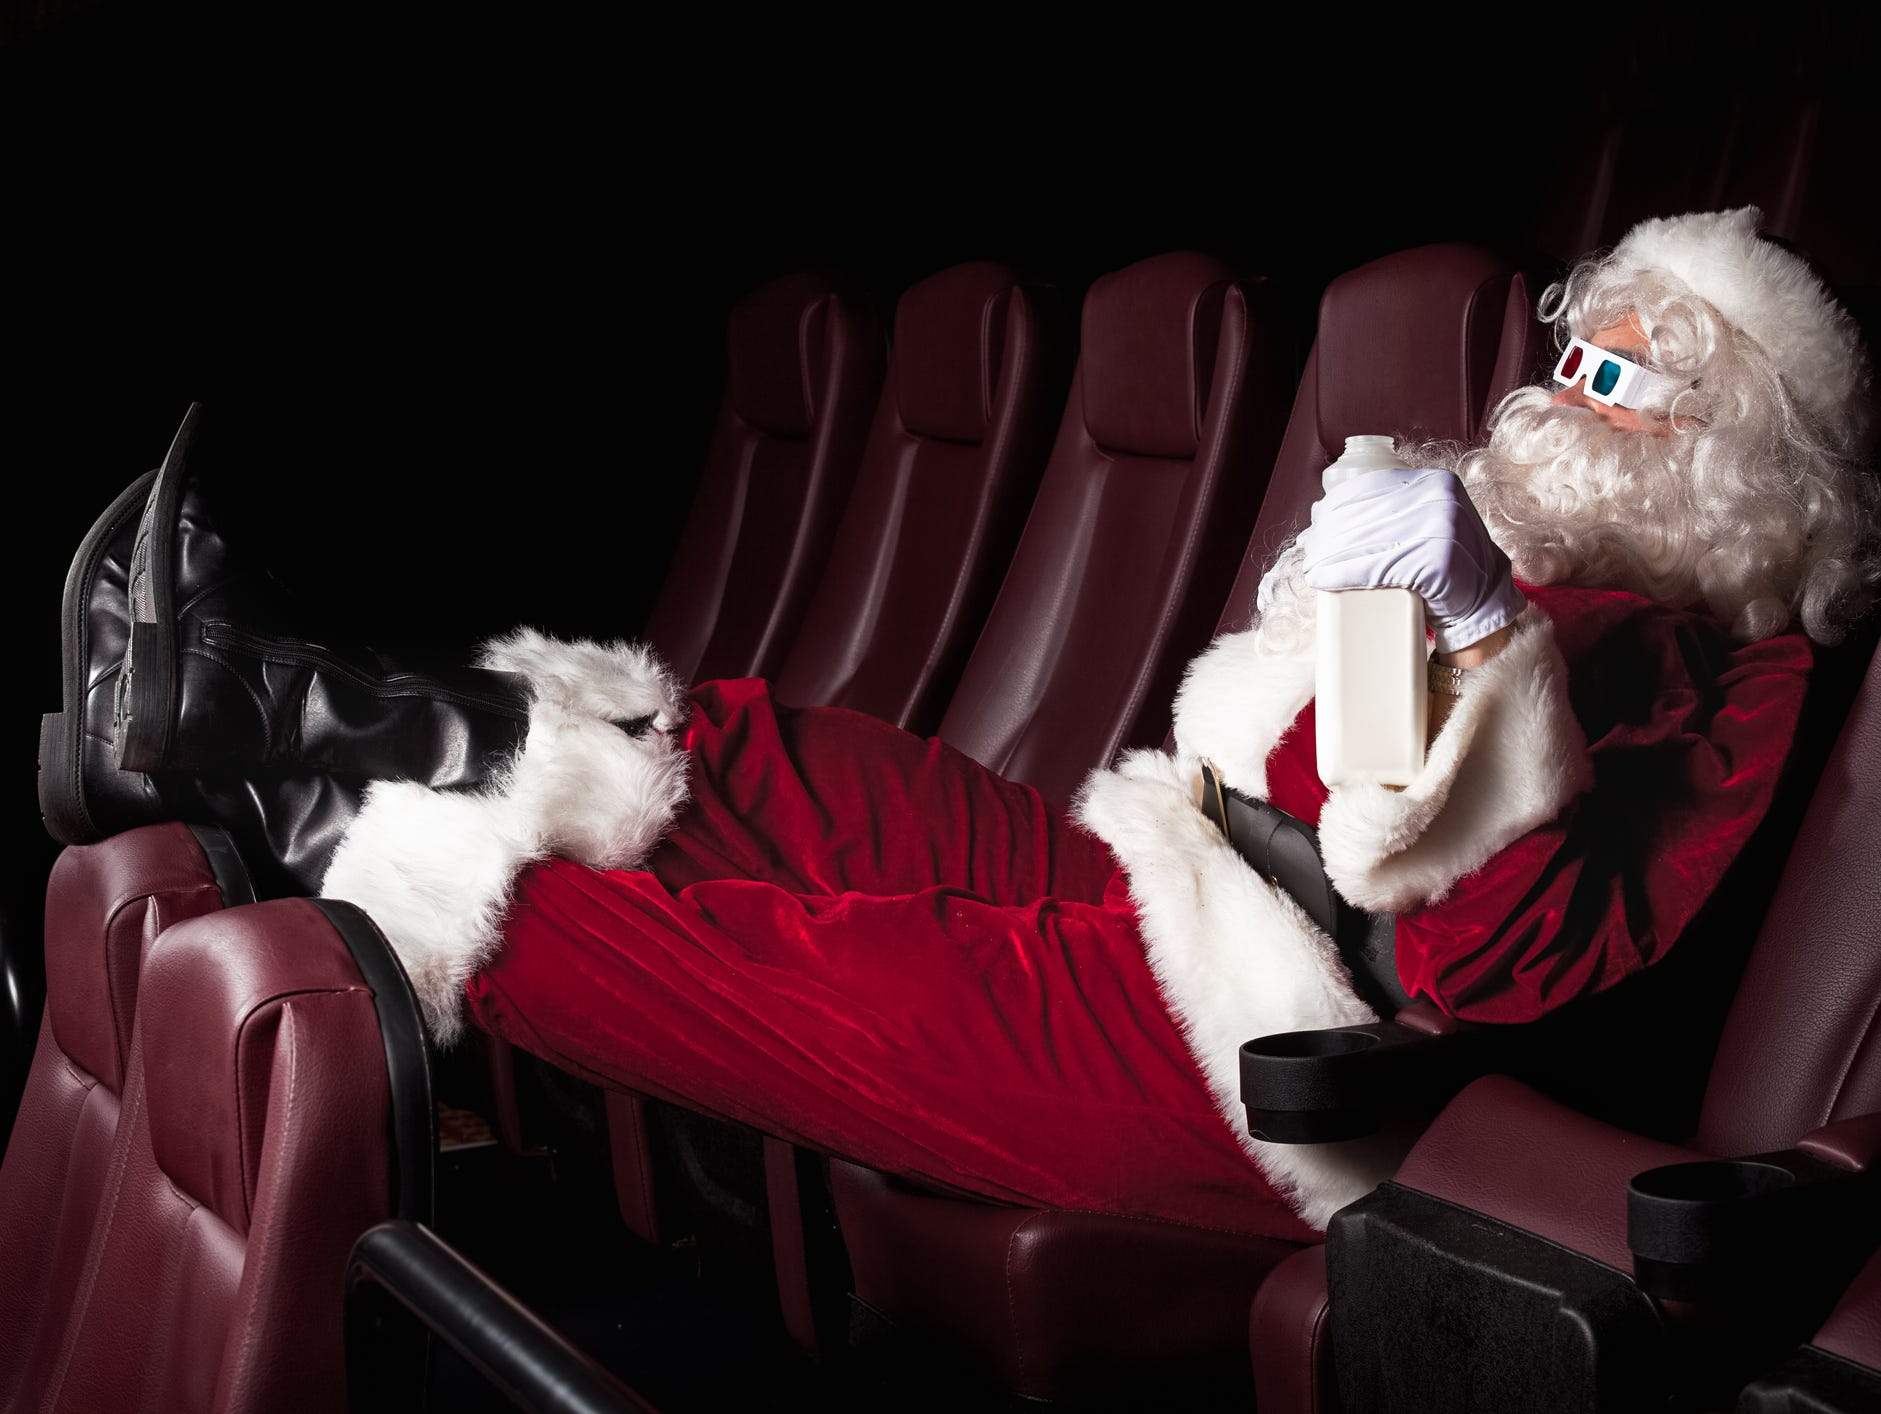 Santa is sending you to the movies! Win a $100 to catch a hot summer flick. Enter 7/16-7/31